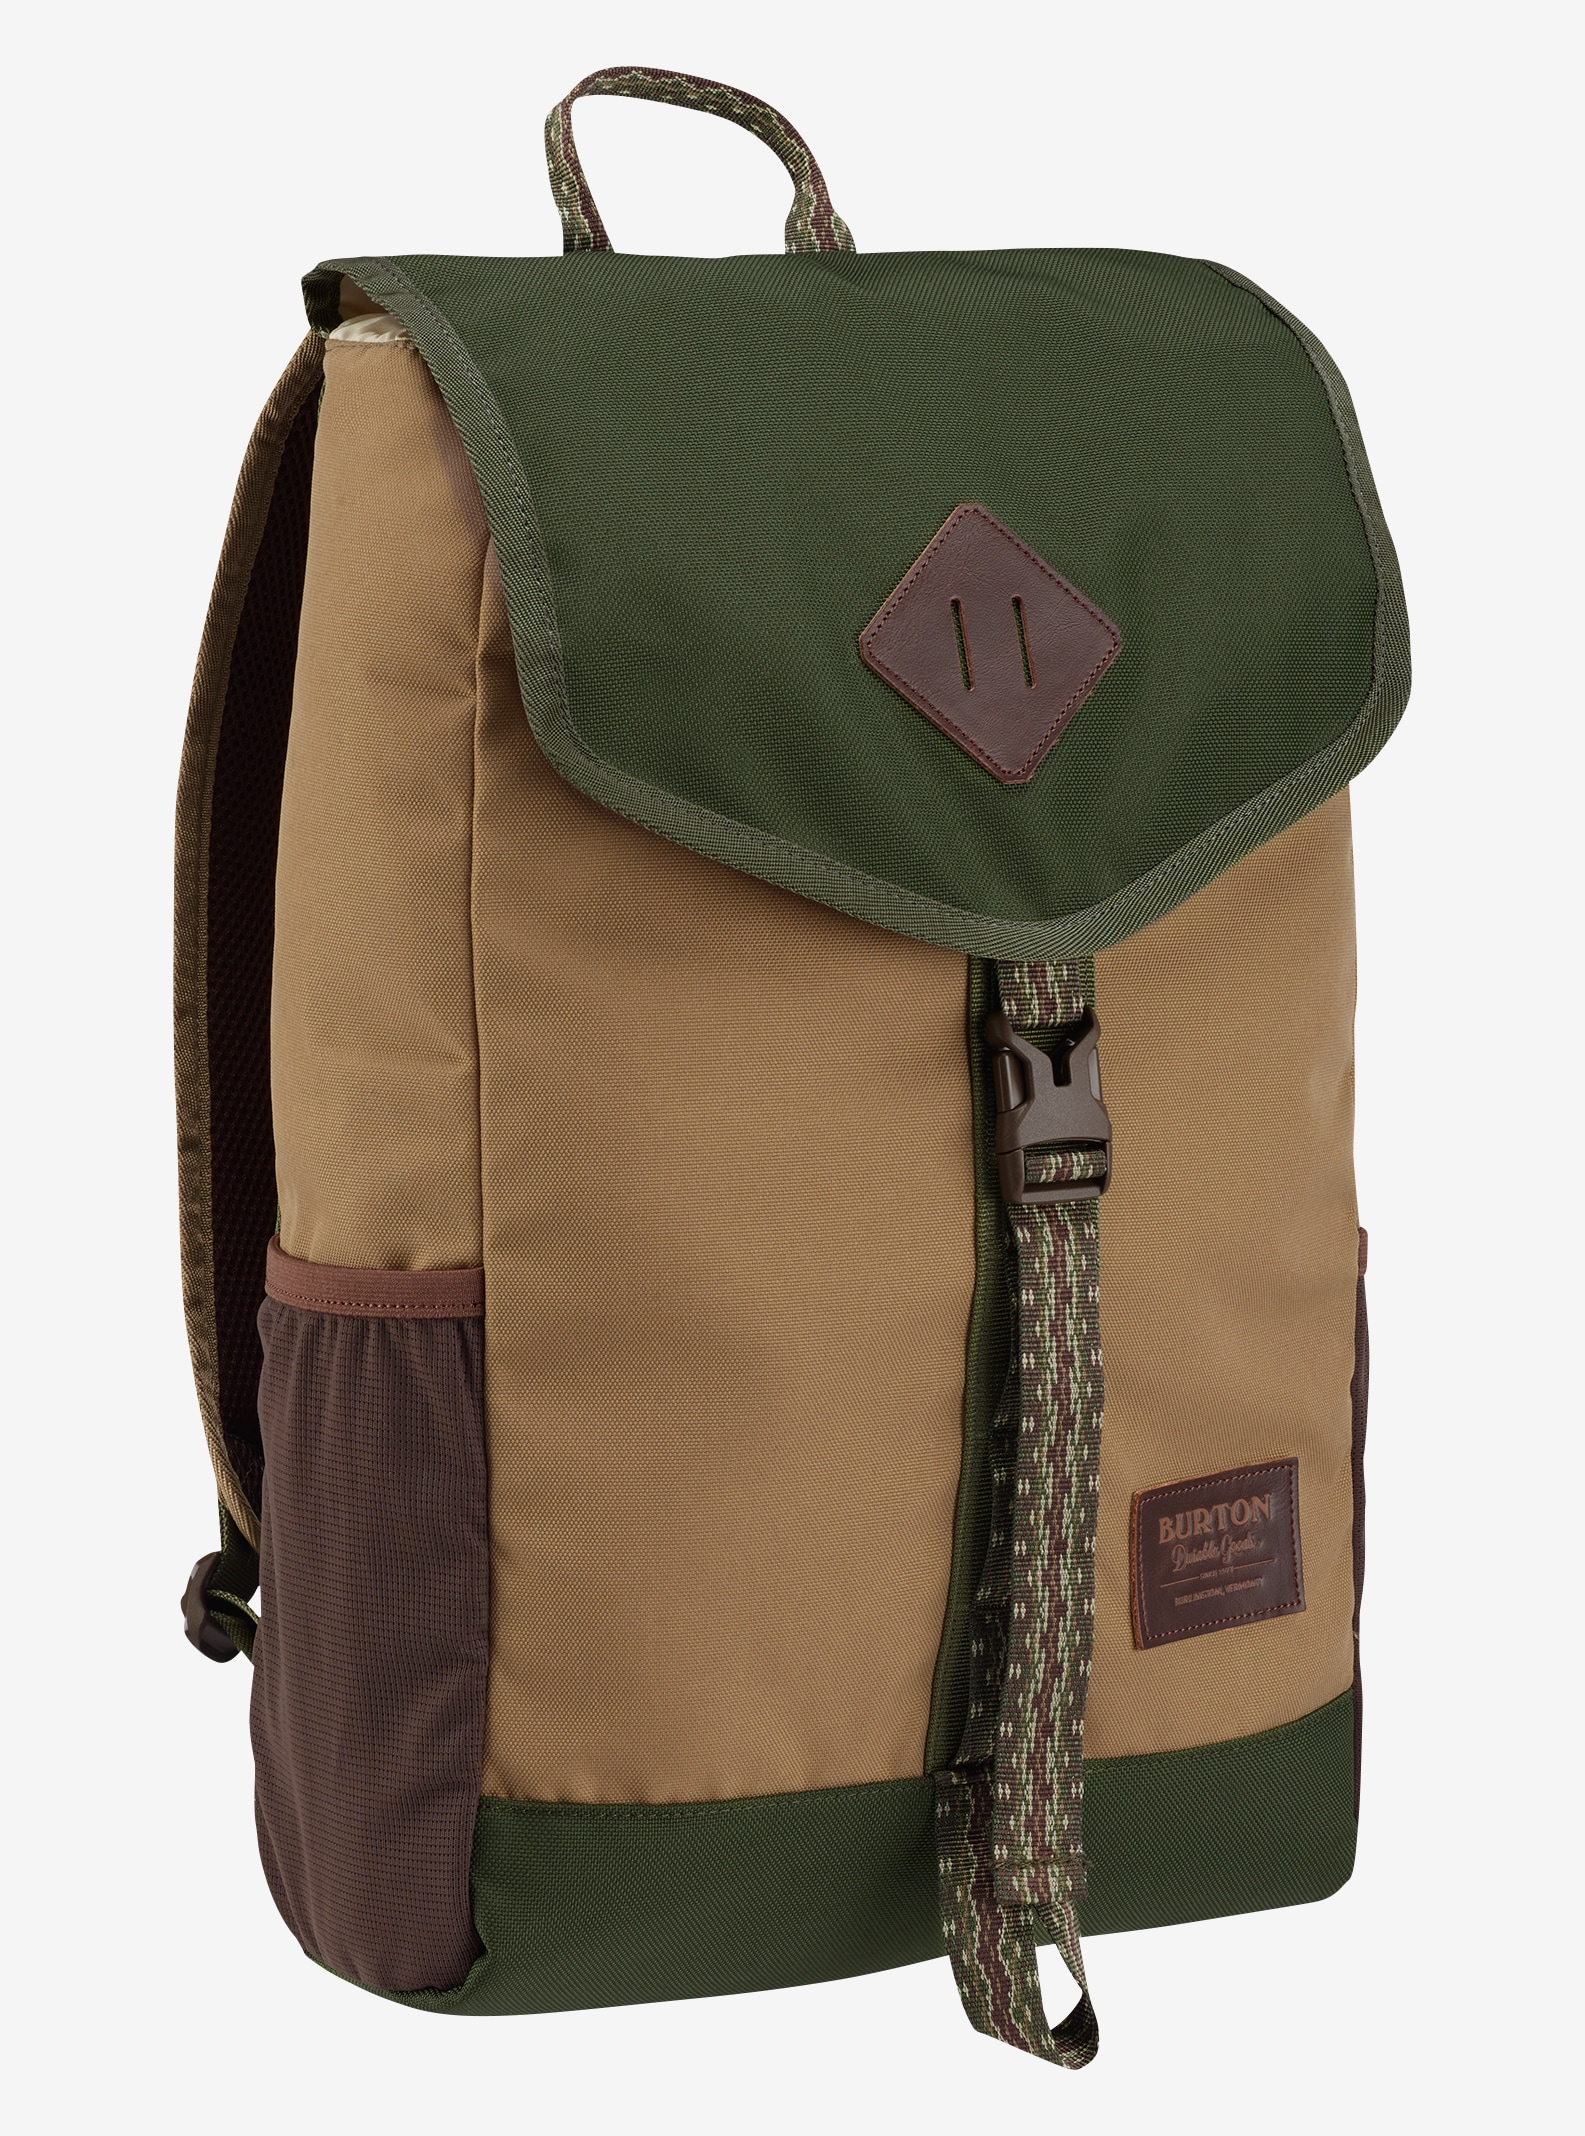 Burton Wesfall Backpack shown in Kelp Coated